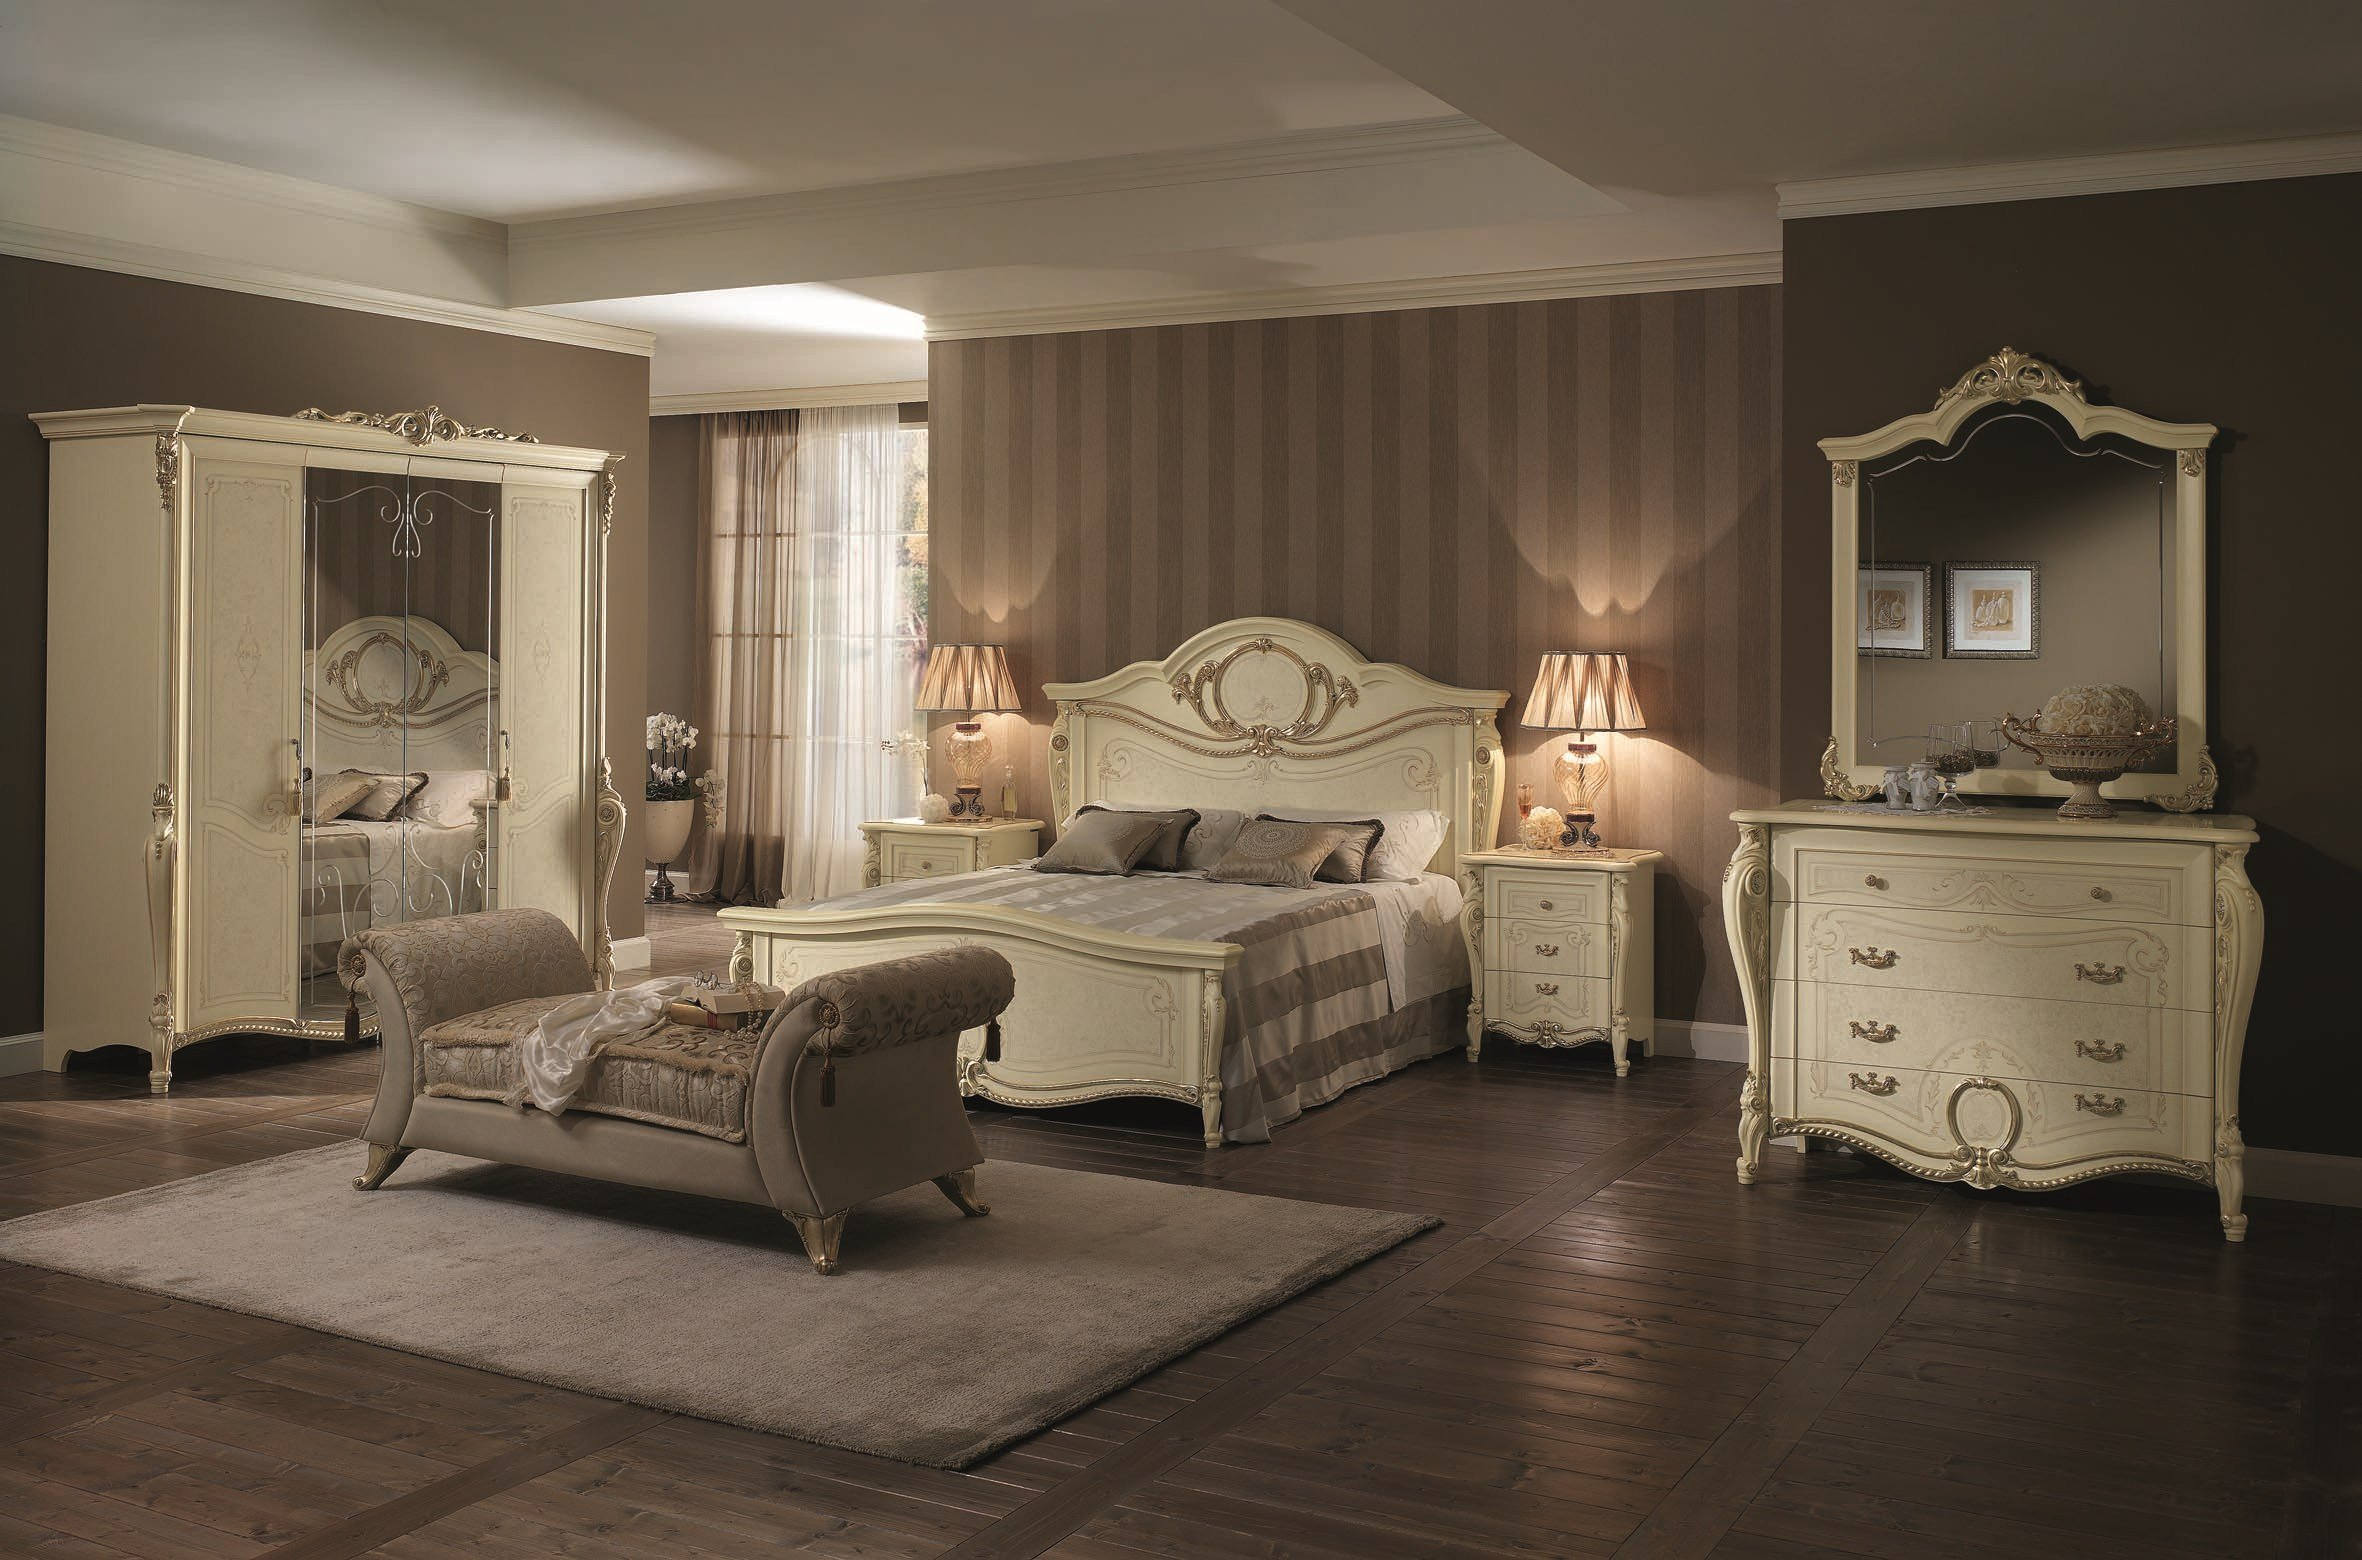 tiziano mobilier de chambre by arredoclassic. Black Bedroom Furniture Sets. Home Design Ideas